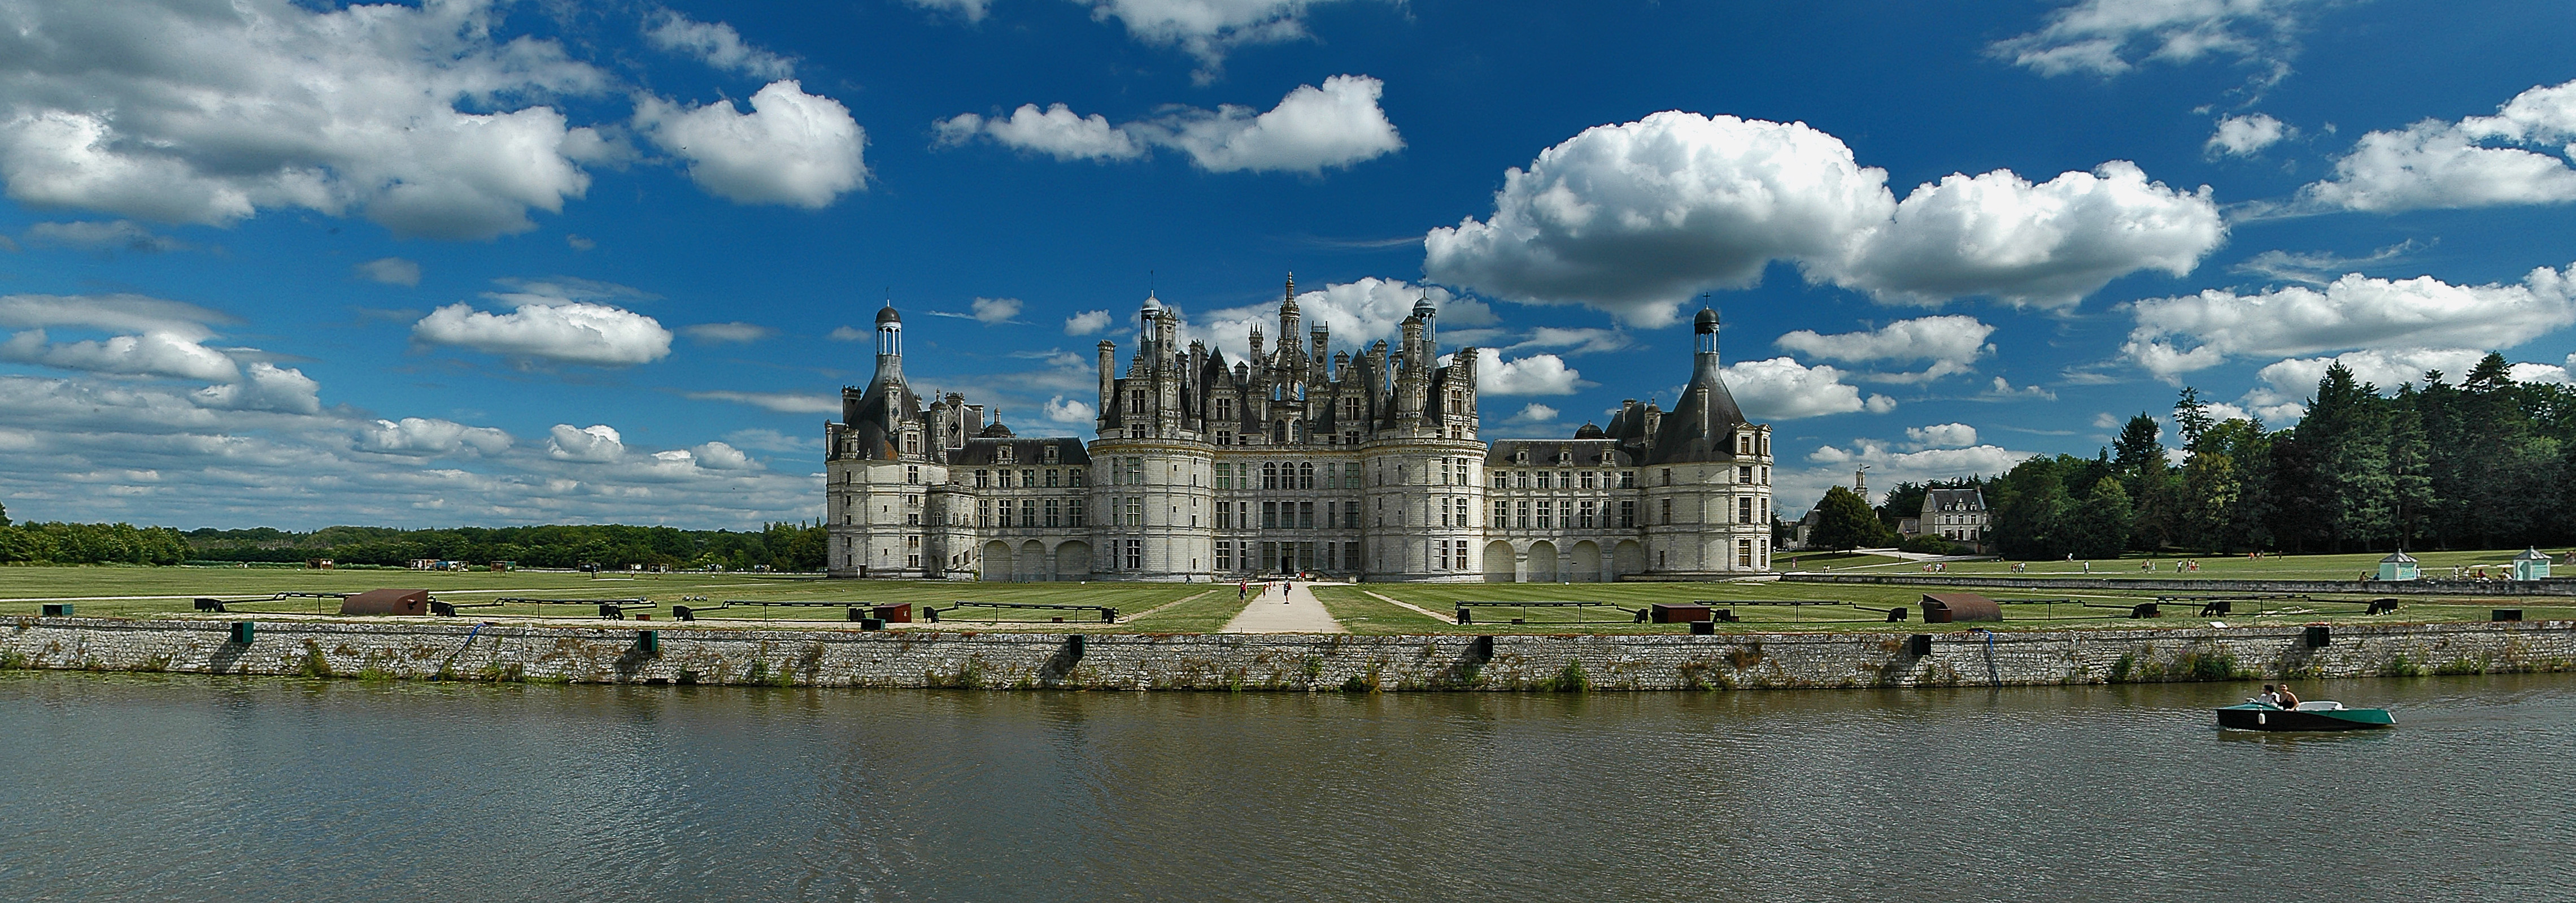 https://upload.wikimedia.org/wikipedia/commons/d/da/Chateau_de_Chambord_2008.jpg